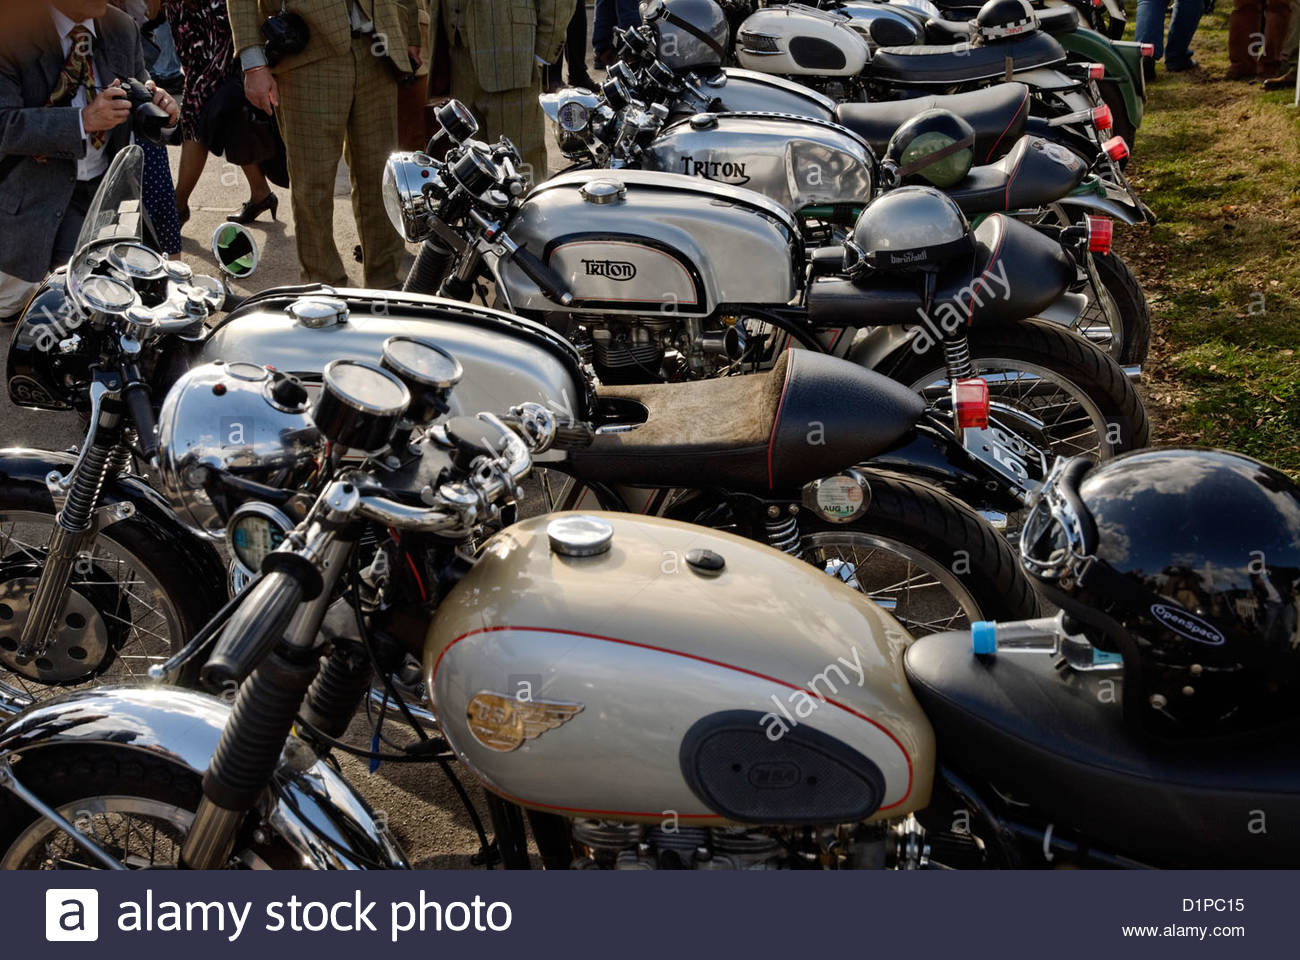 Triton Cafe Racer at the Goodwood Revival Meeting 2012 - Stock Image